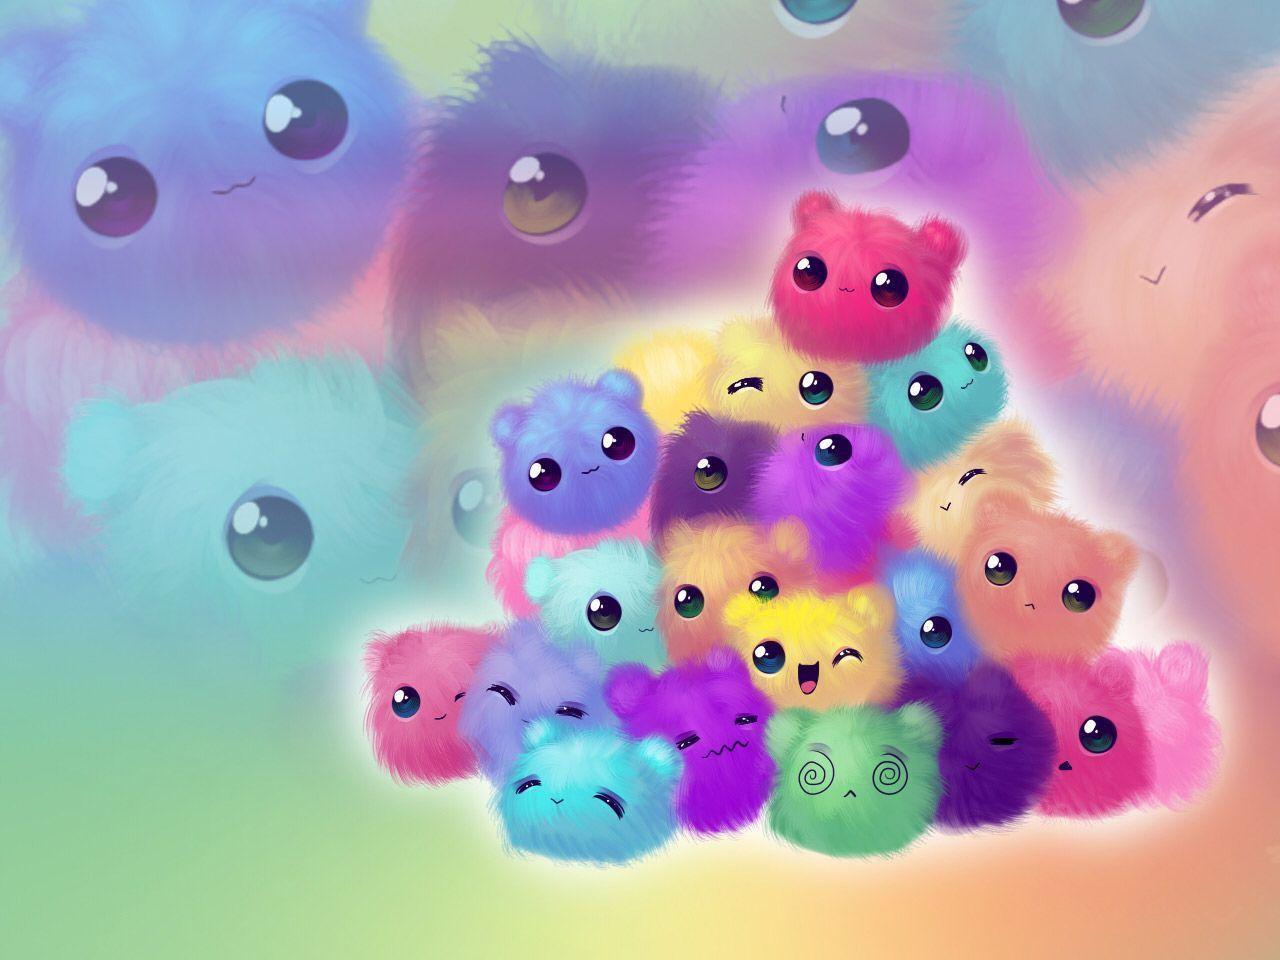 Wallpaper Cool And Cute